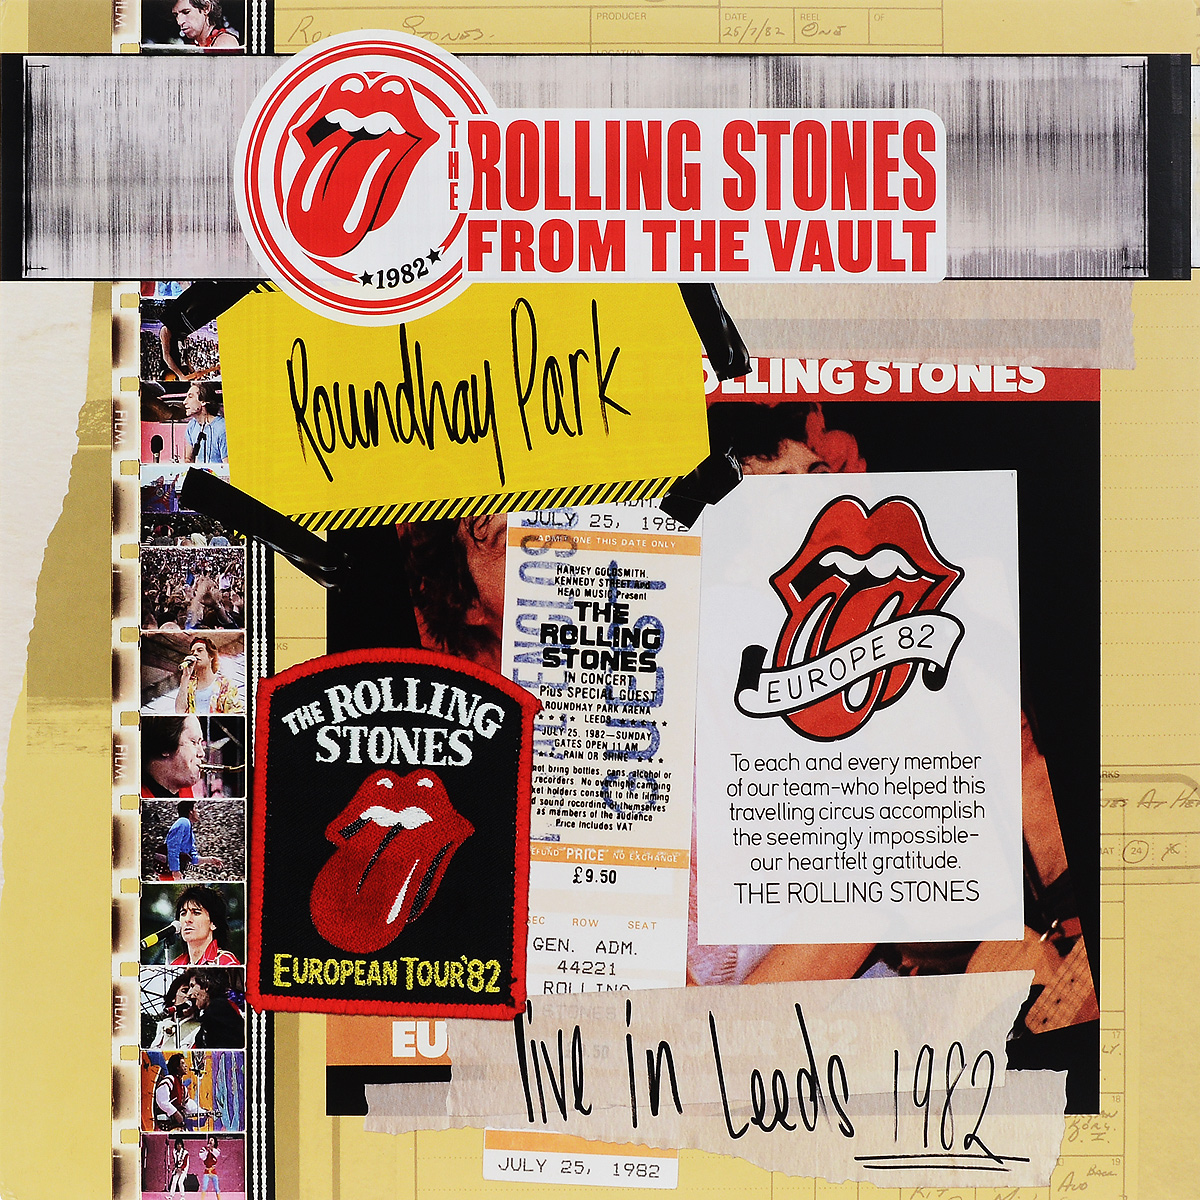 The Rolling Stones The Rolling Stones. Live In Leeds 1982 (3 LP + DVD) the rolling stones from the vault live in leeds 1982 blu ray